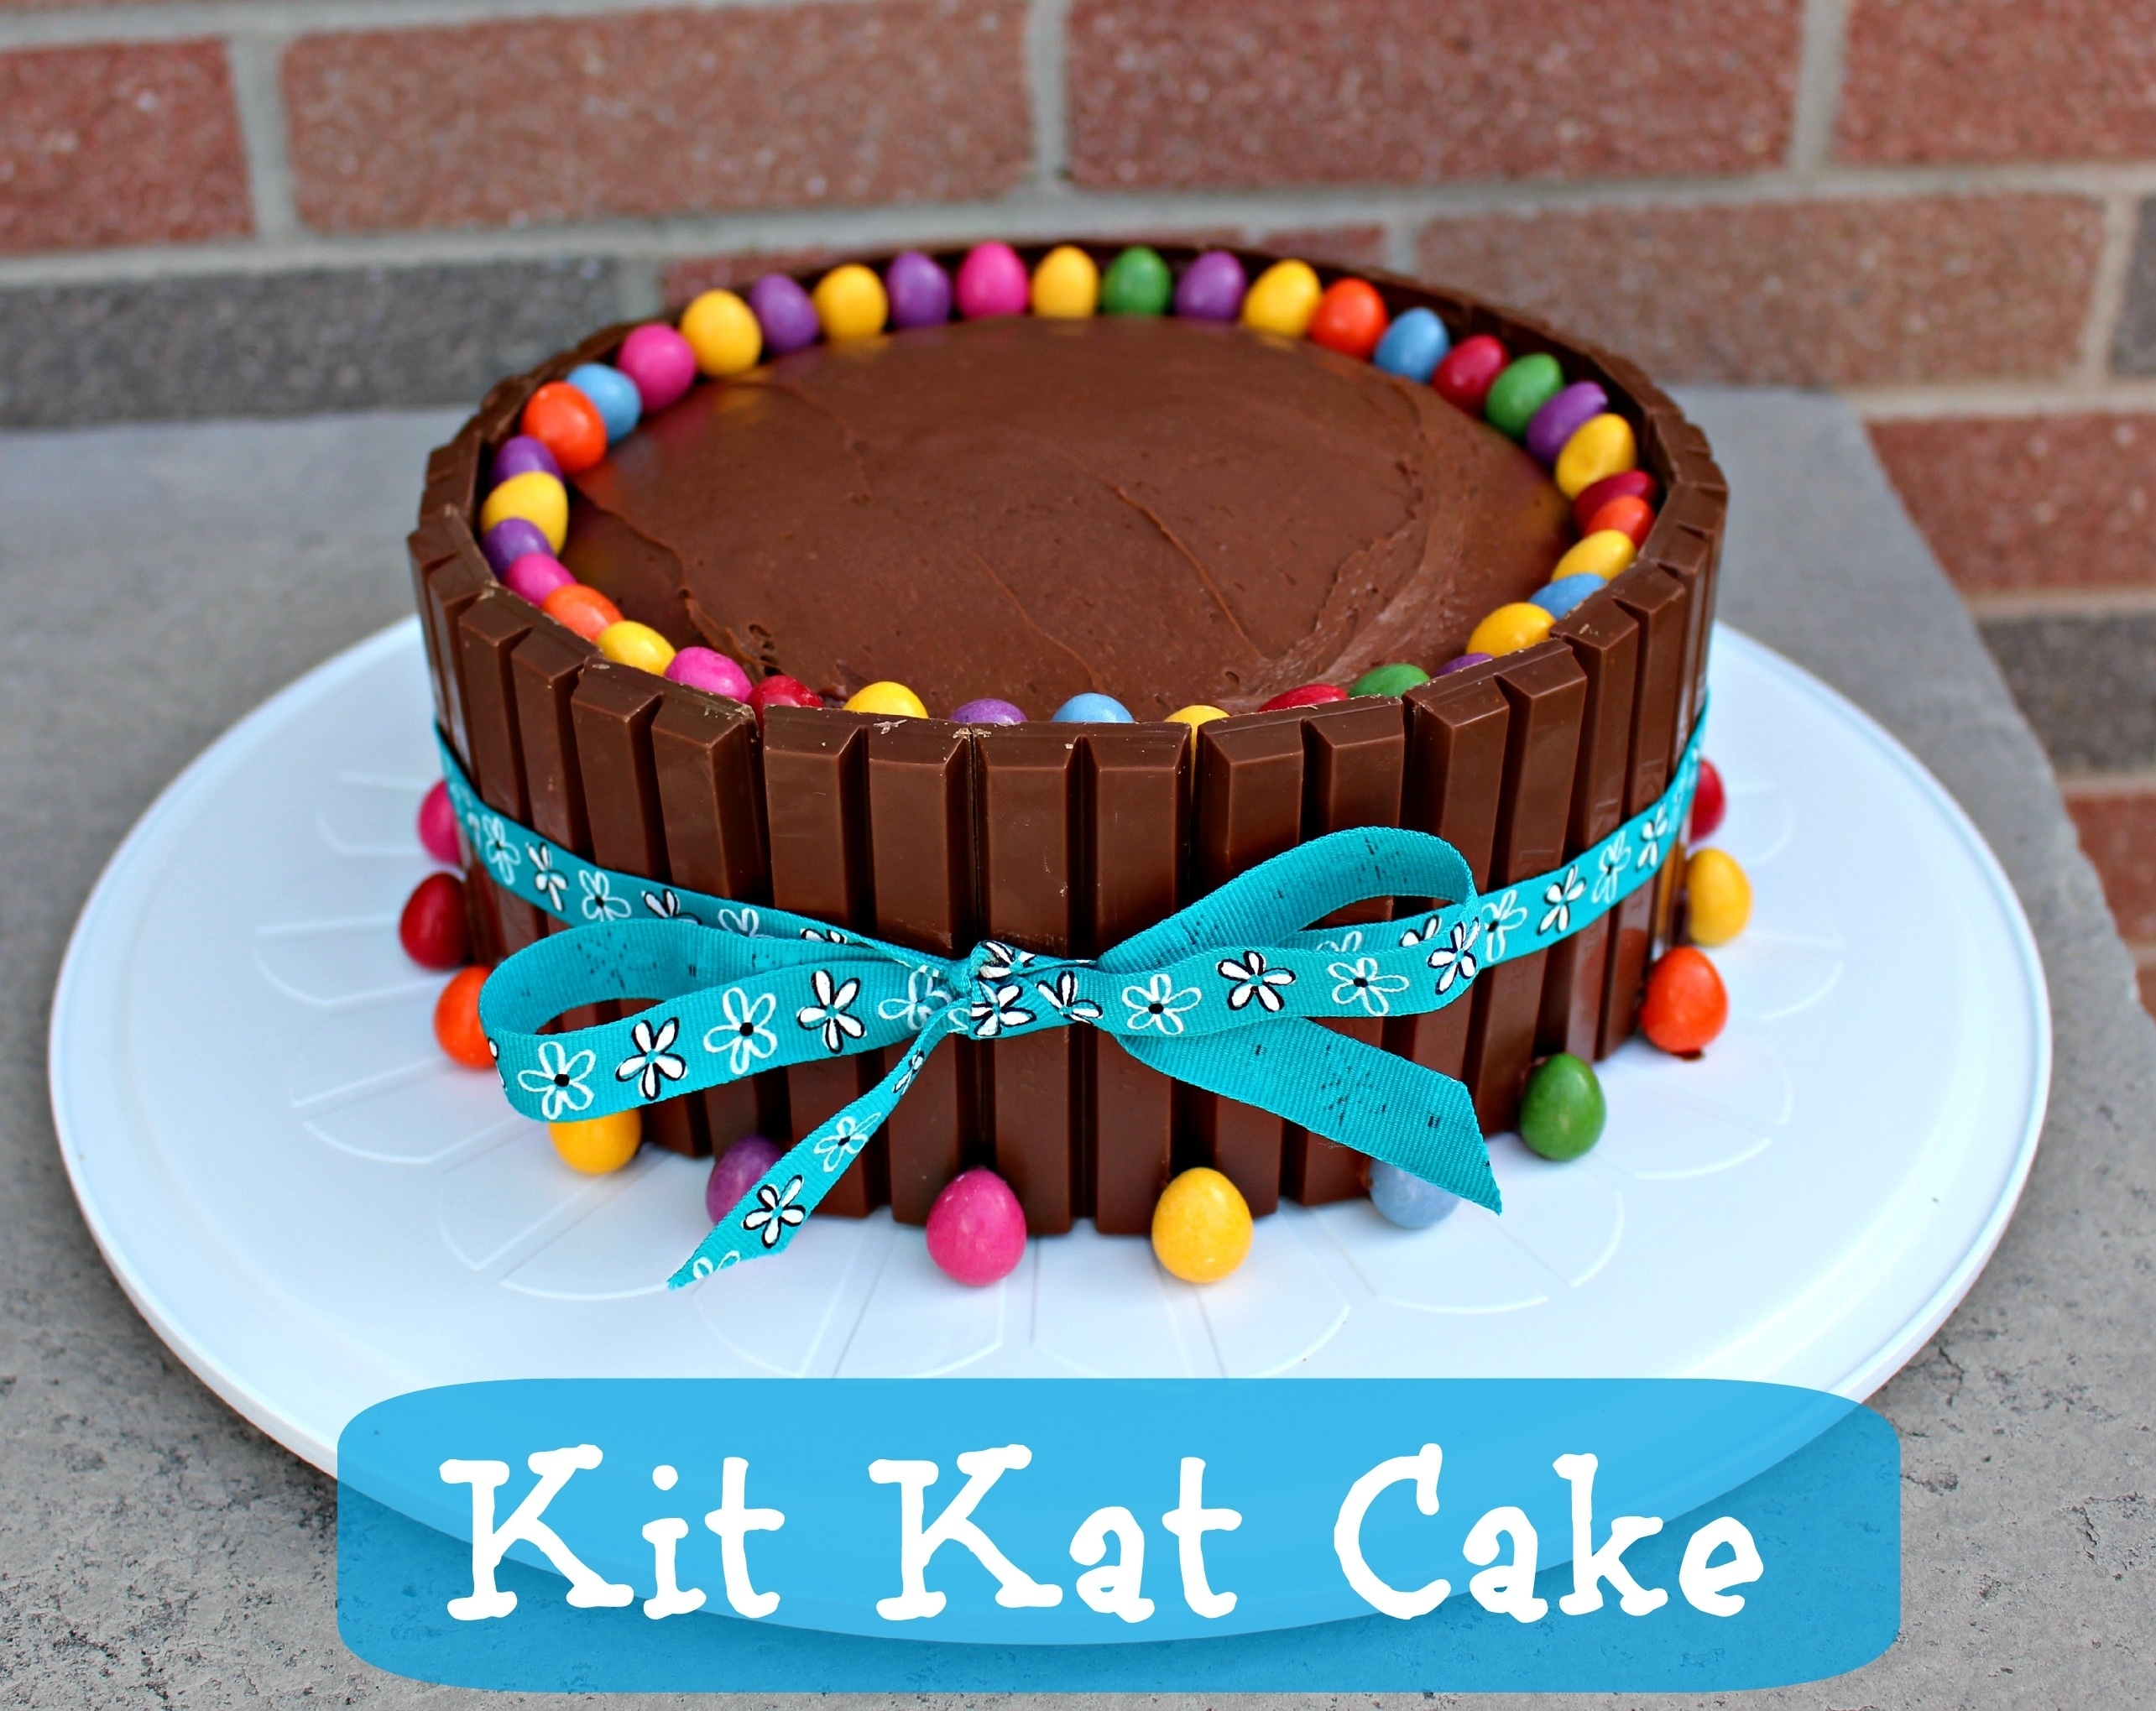 10 Most Recommended Easy Cake Decorating Ideas For Kids %name 2021